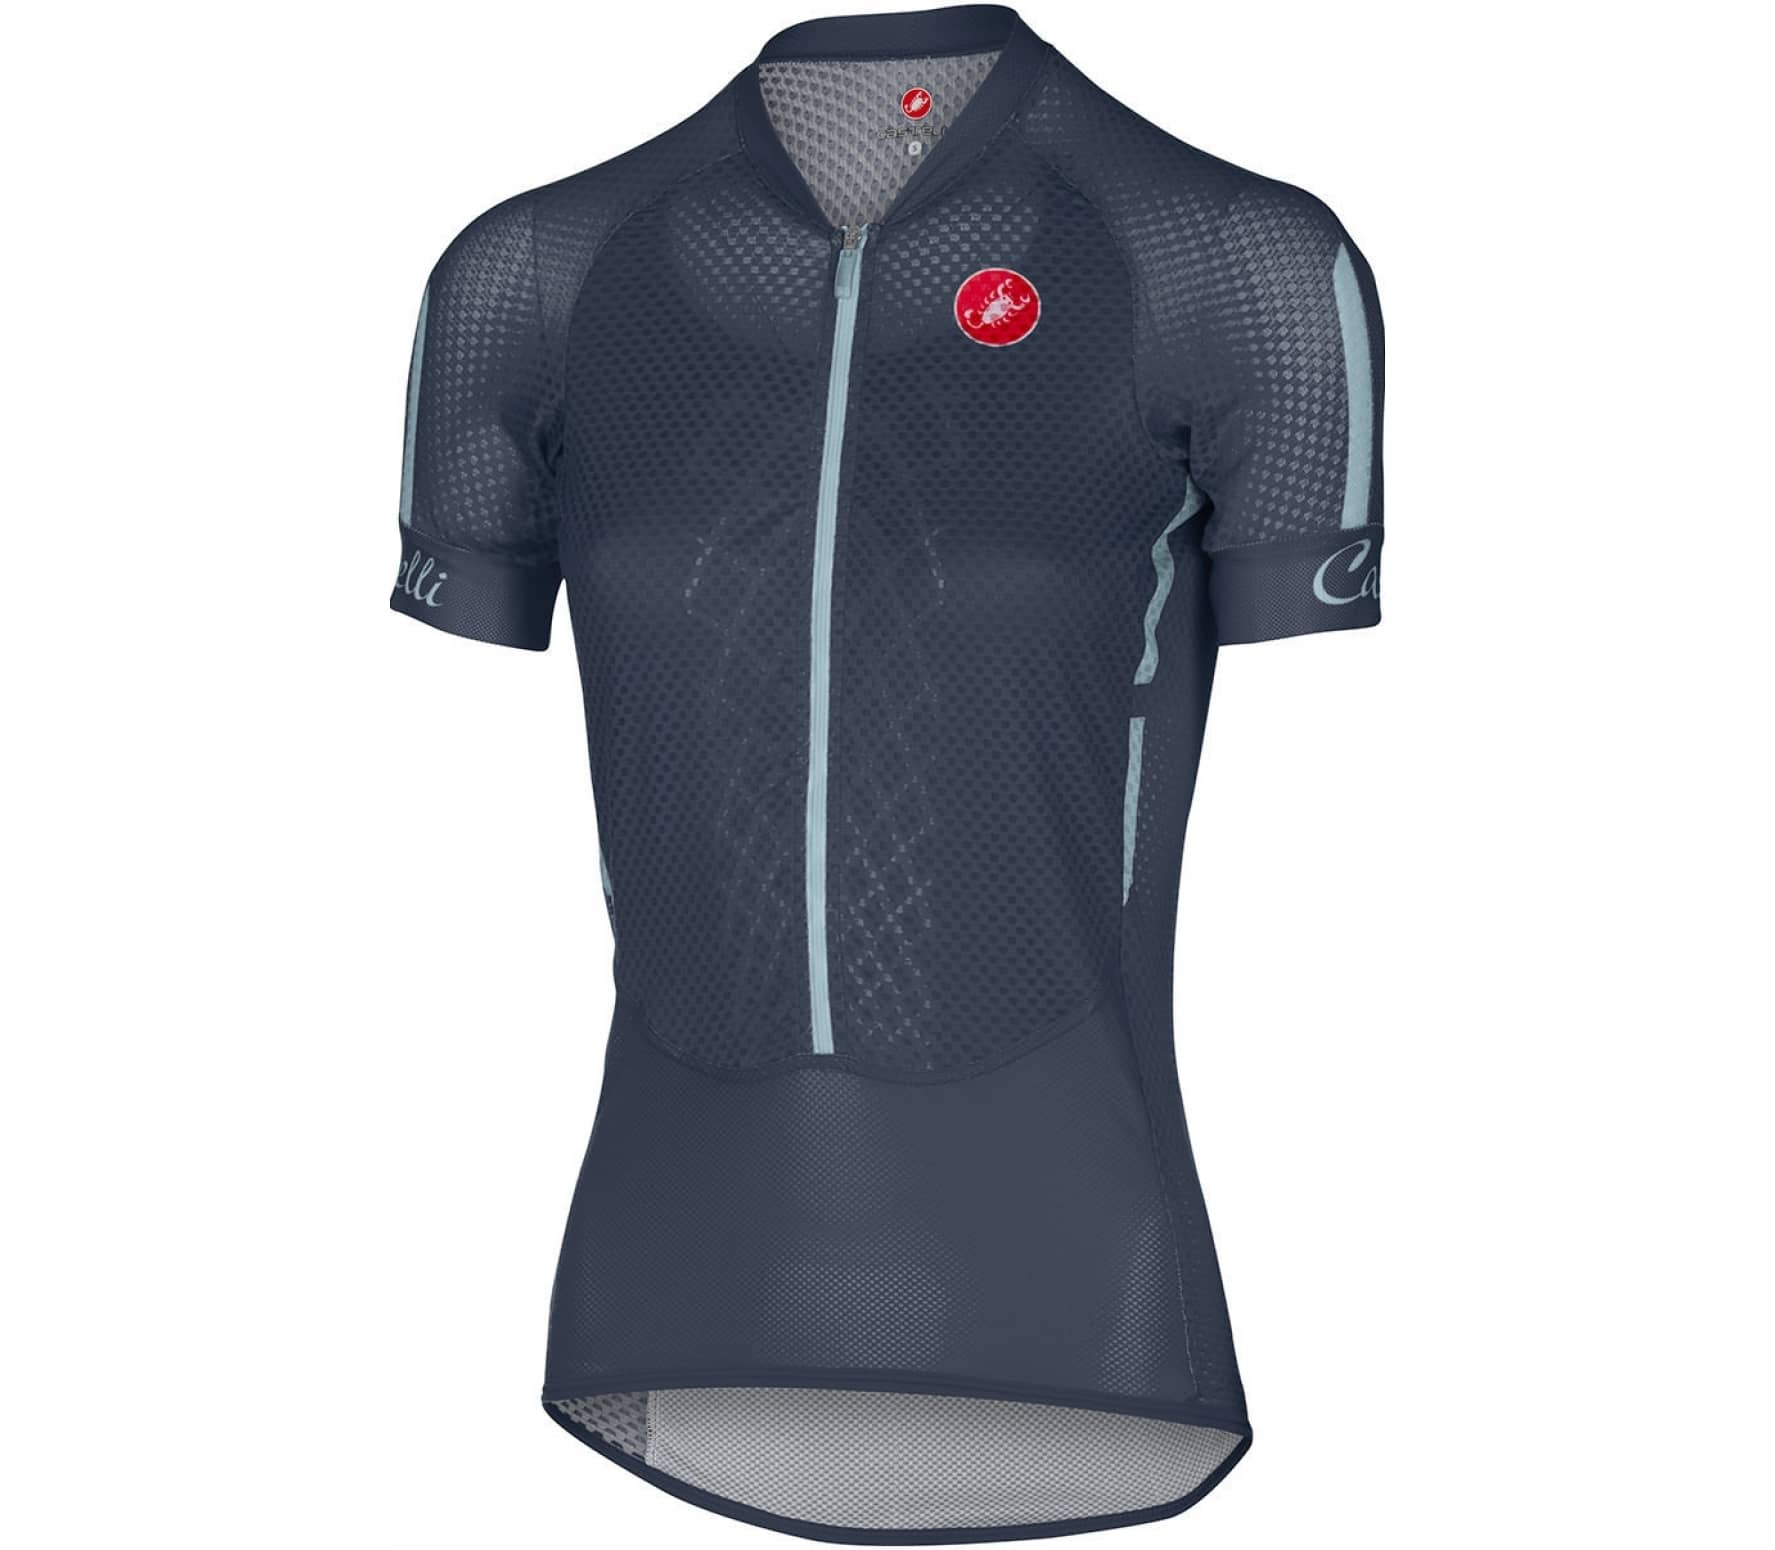 castelli climber 39 s jersey damen bike trikot dunkelblau. Black Bedroom Furniture Sets. Home Design Ideas